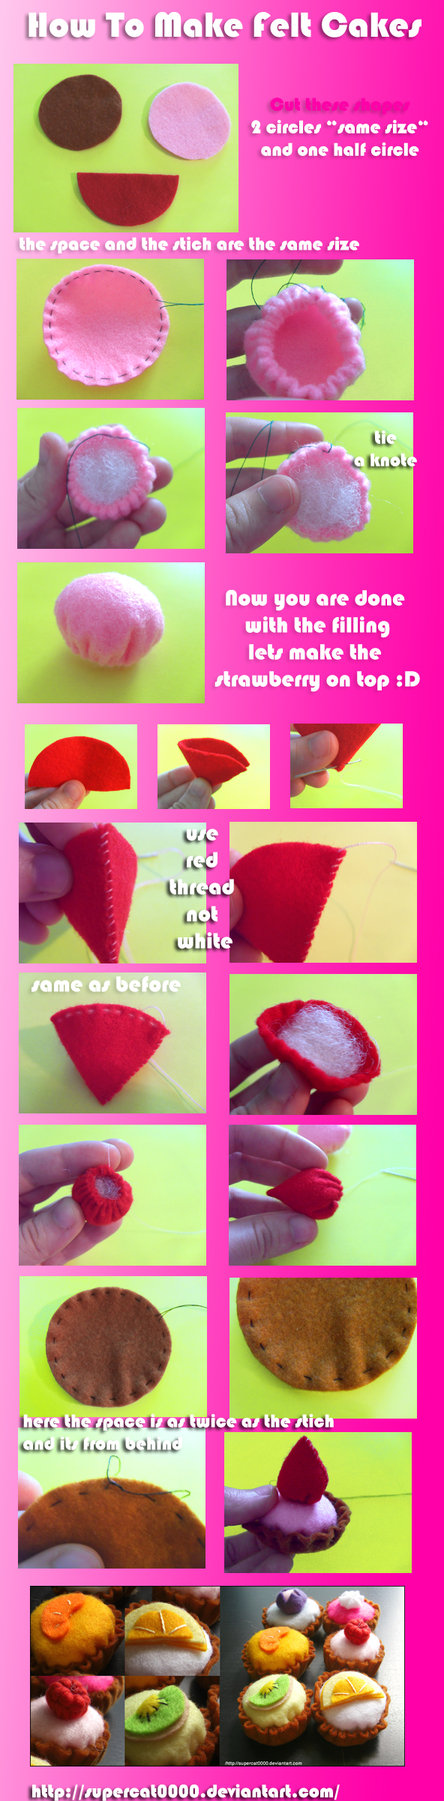 How to make felt cakes by ~SuperCat0000 on deviantART